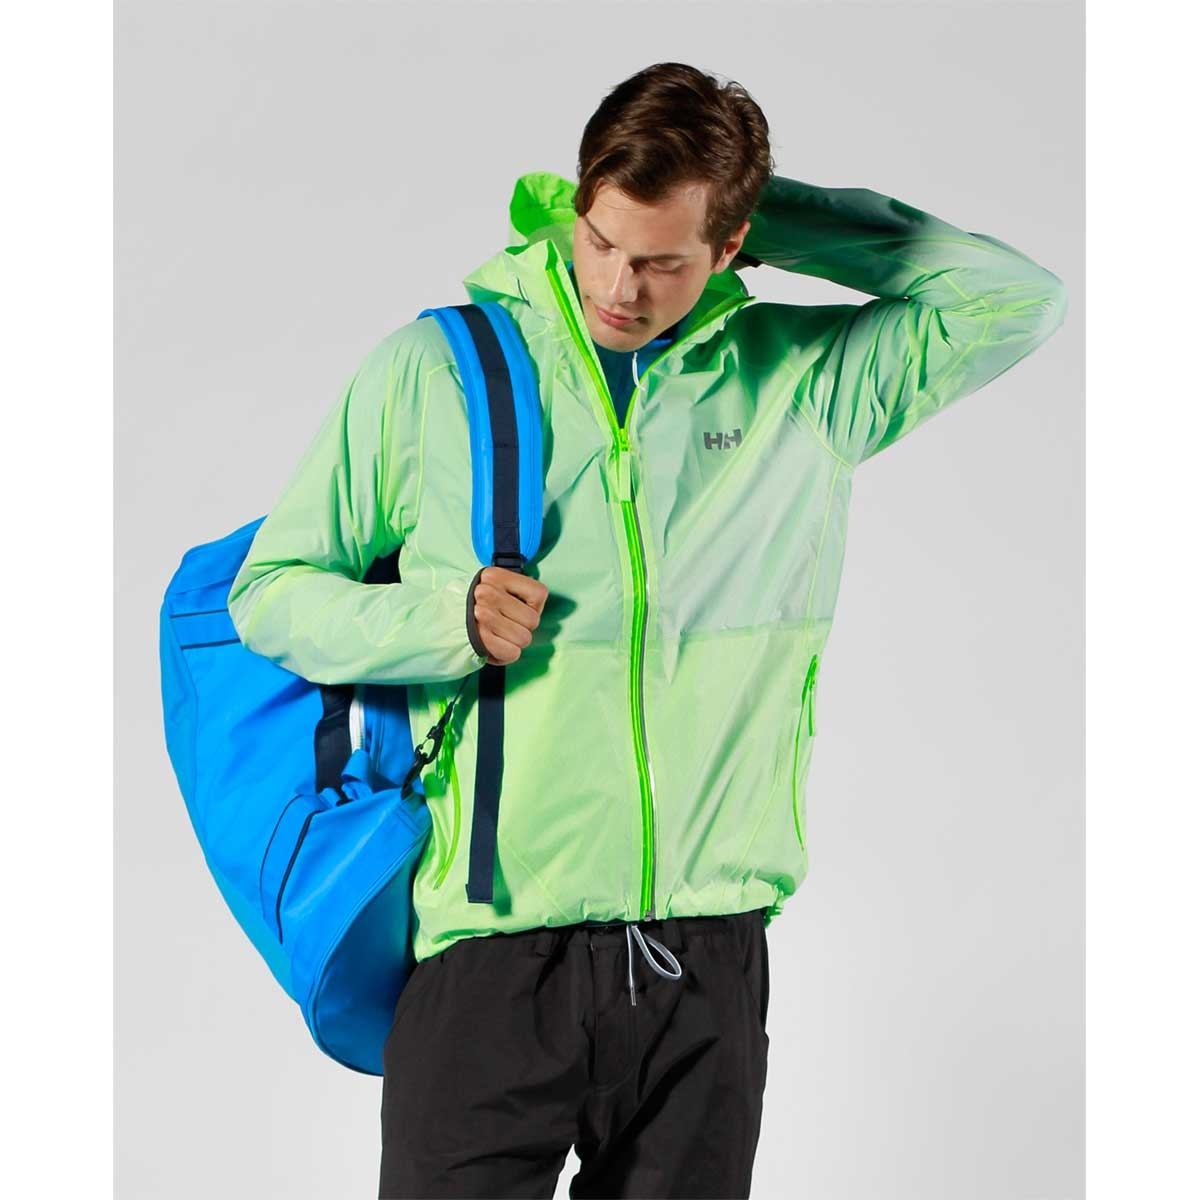 04dab4bea37 Helly Hansen Duffel Bag 2 - 50L - Racer Blue | Uttings.co.uk